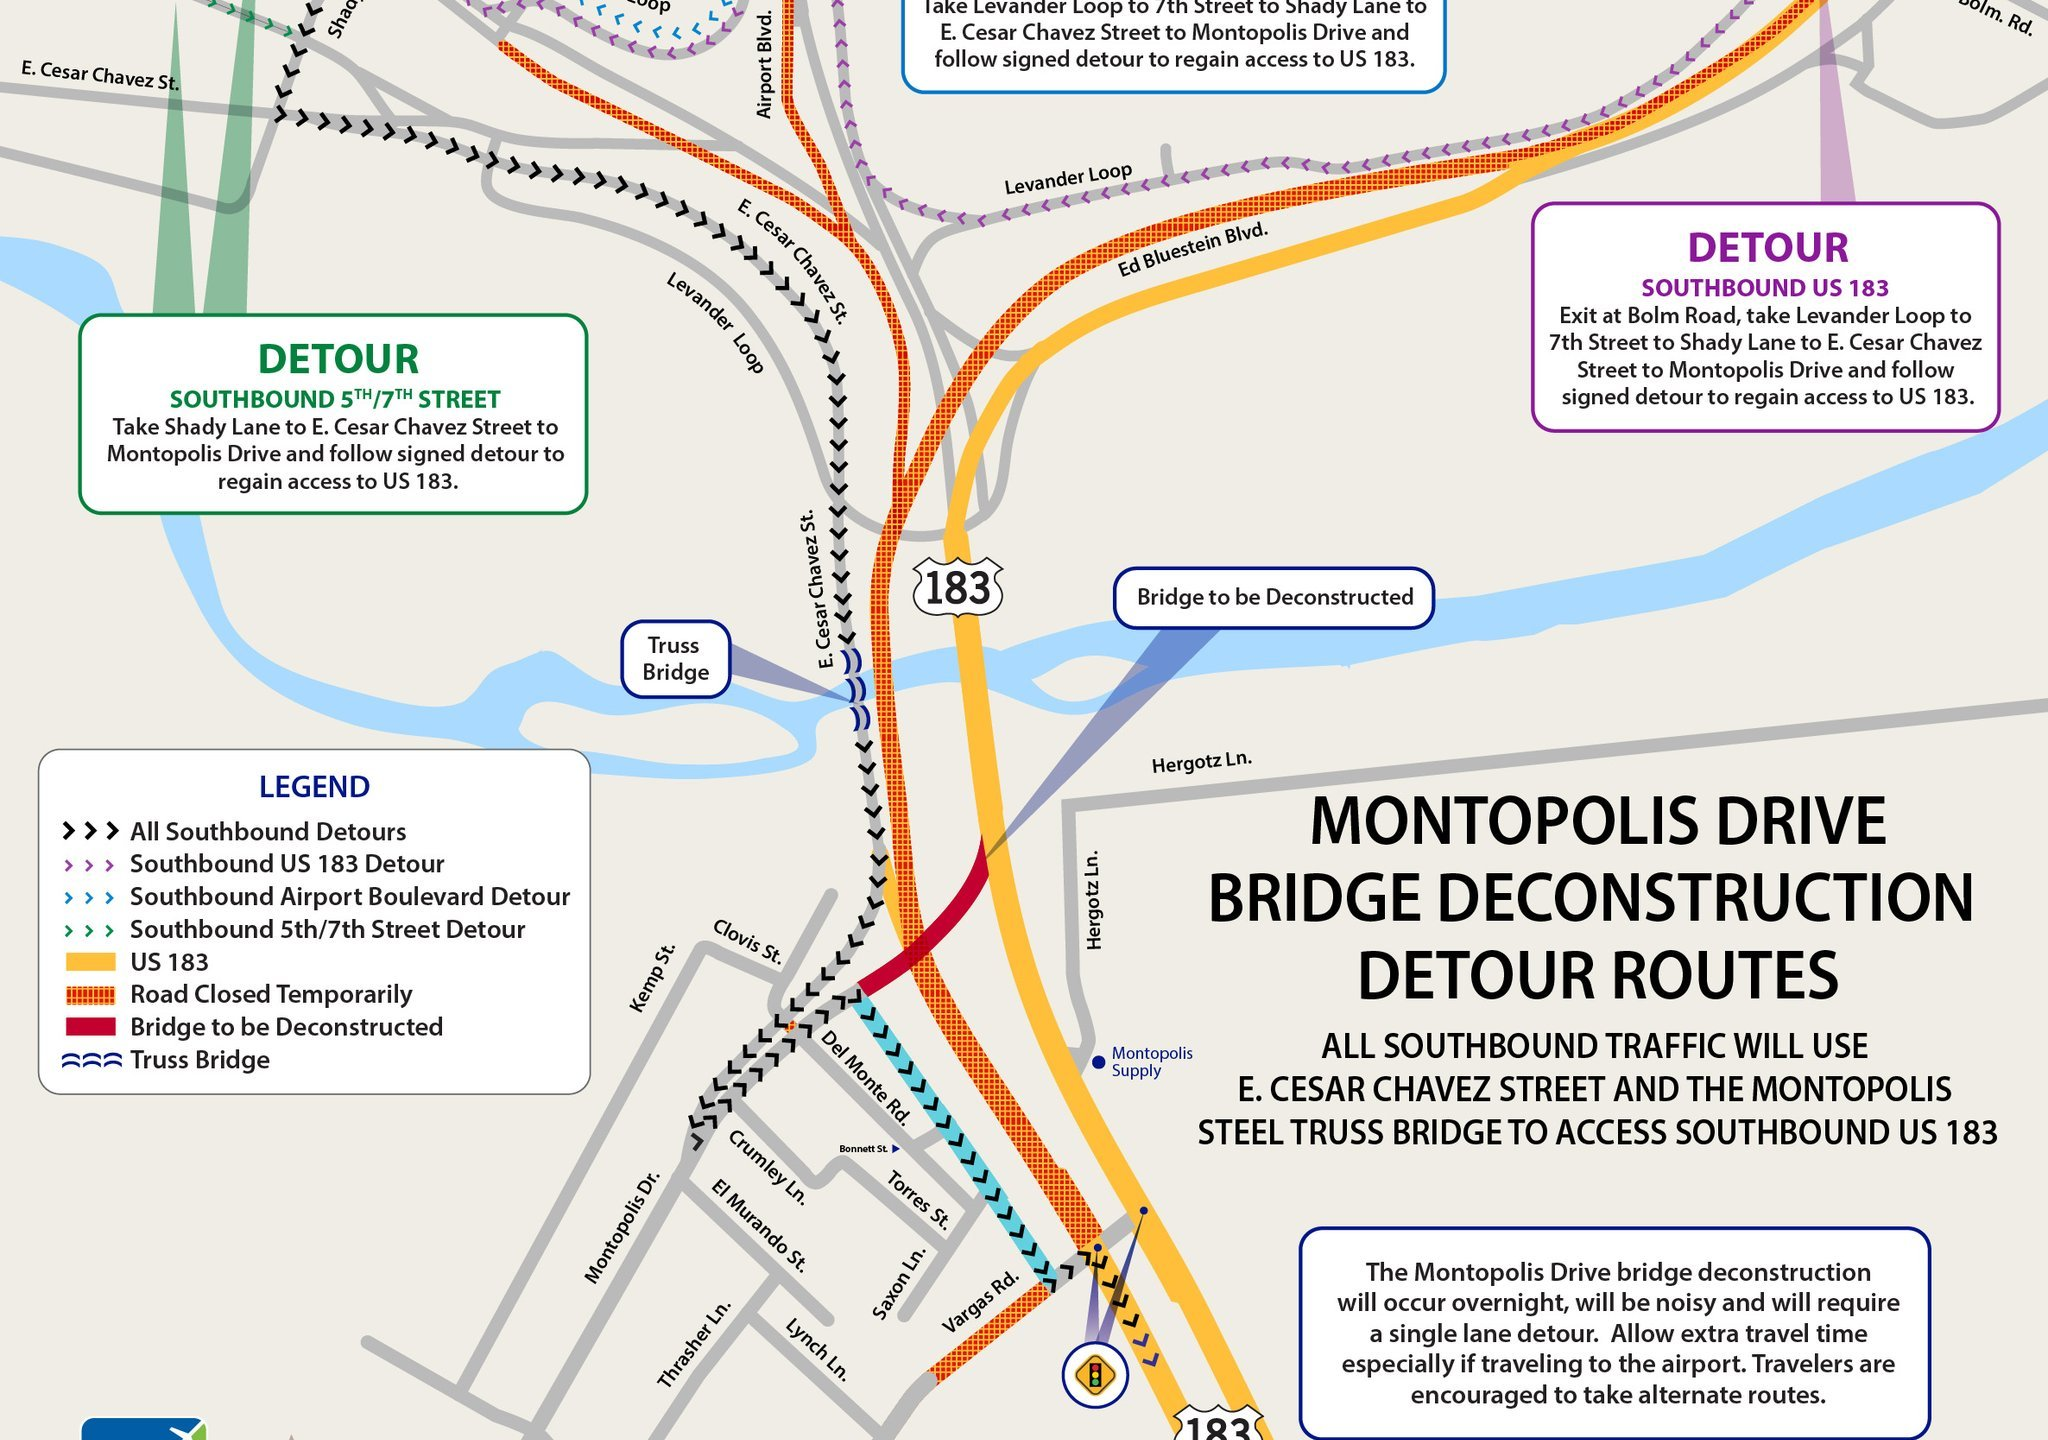 183 South Montopolis Bridge deconstruction detours